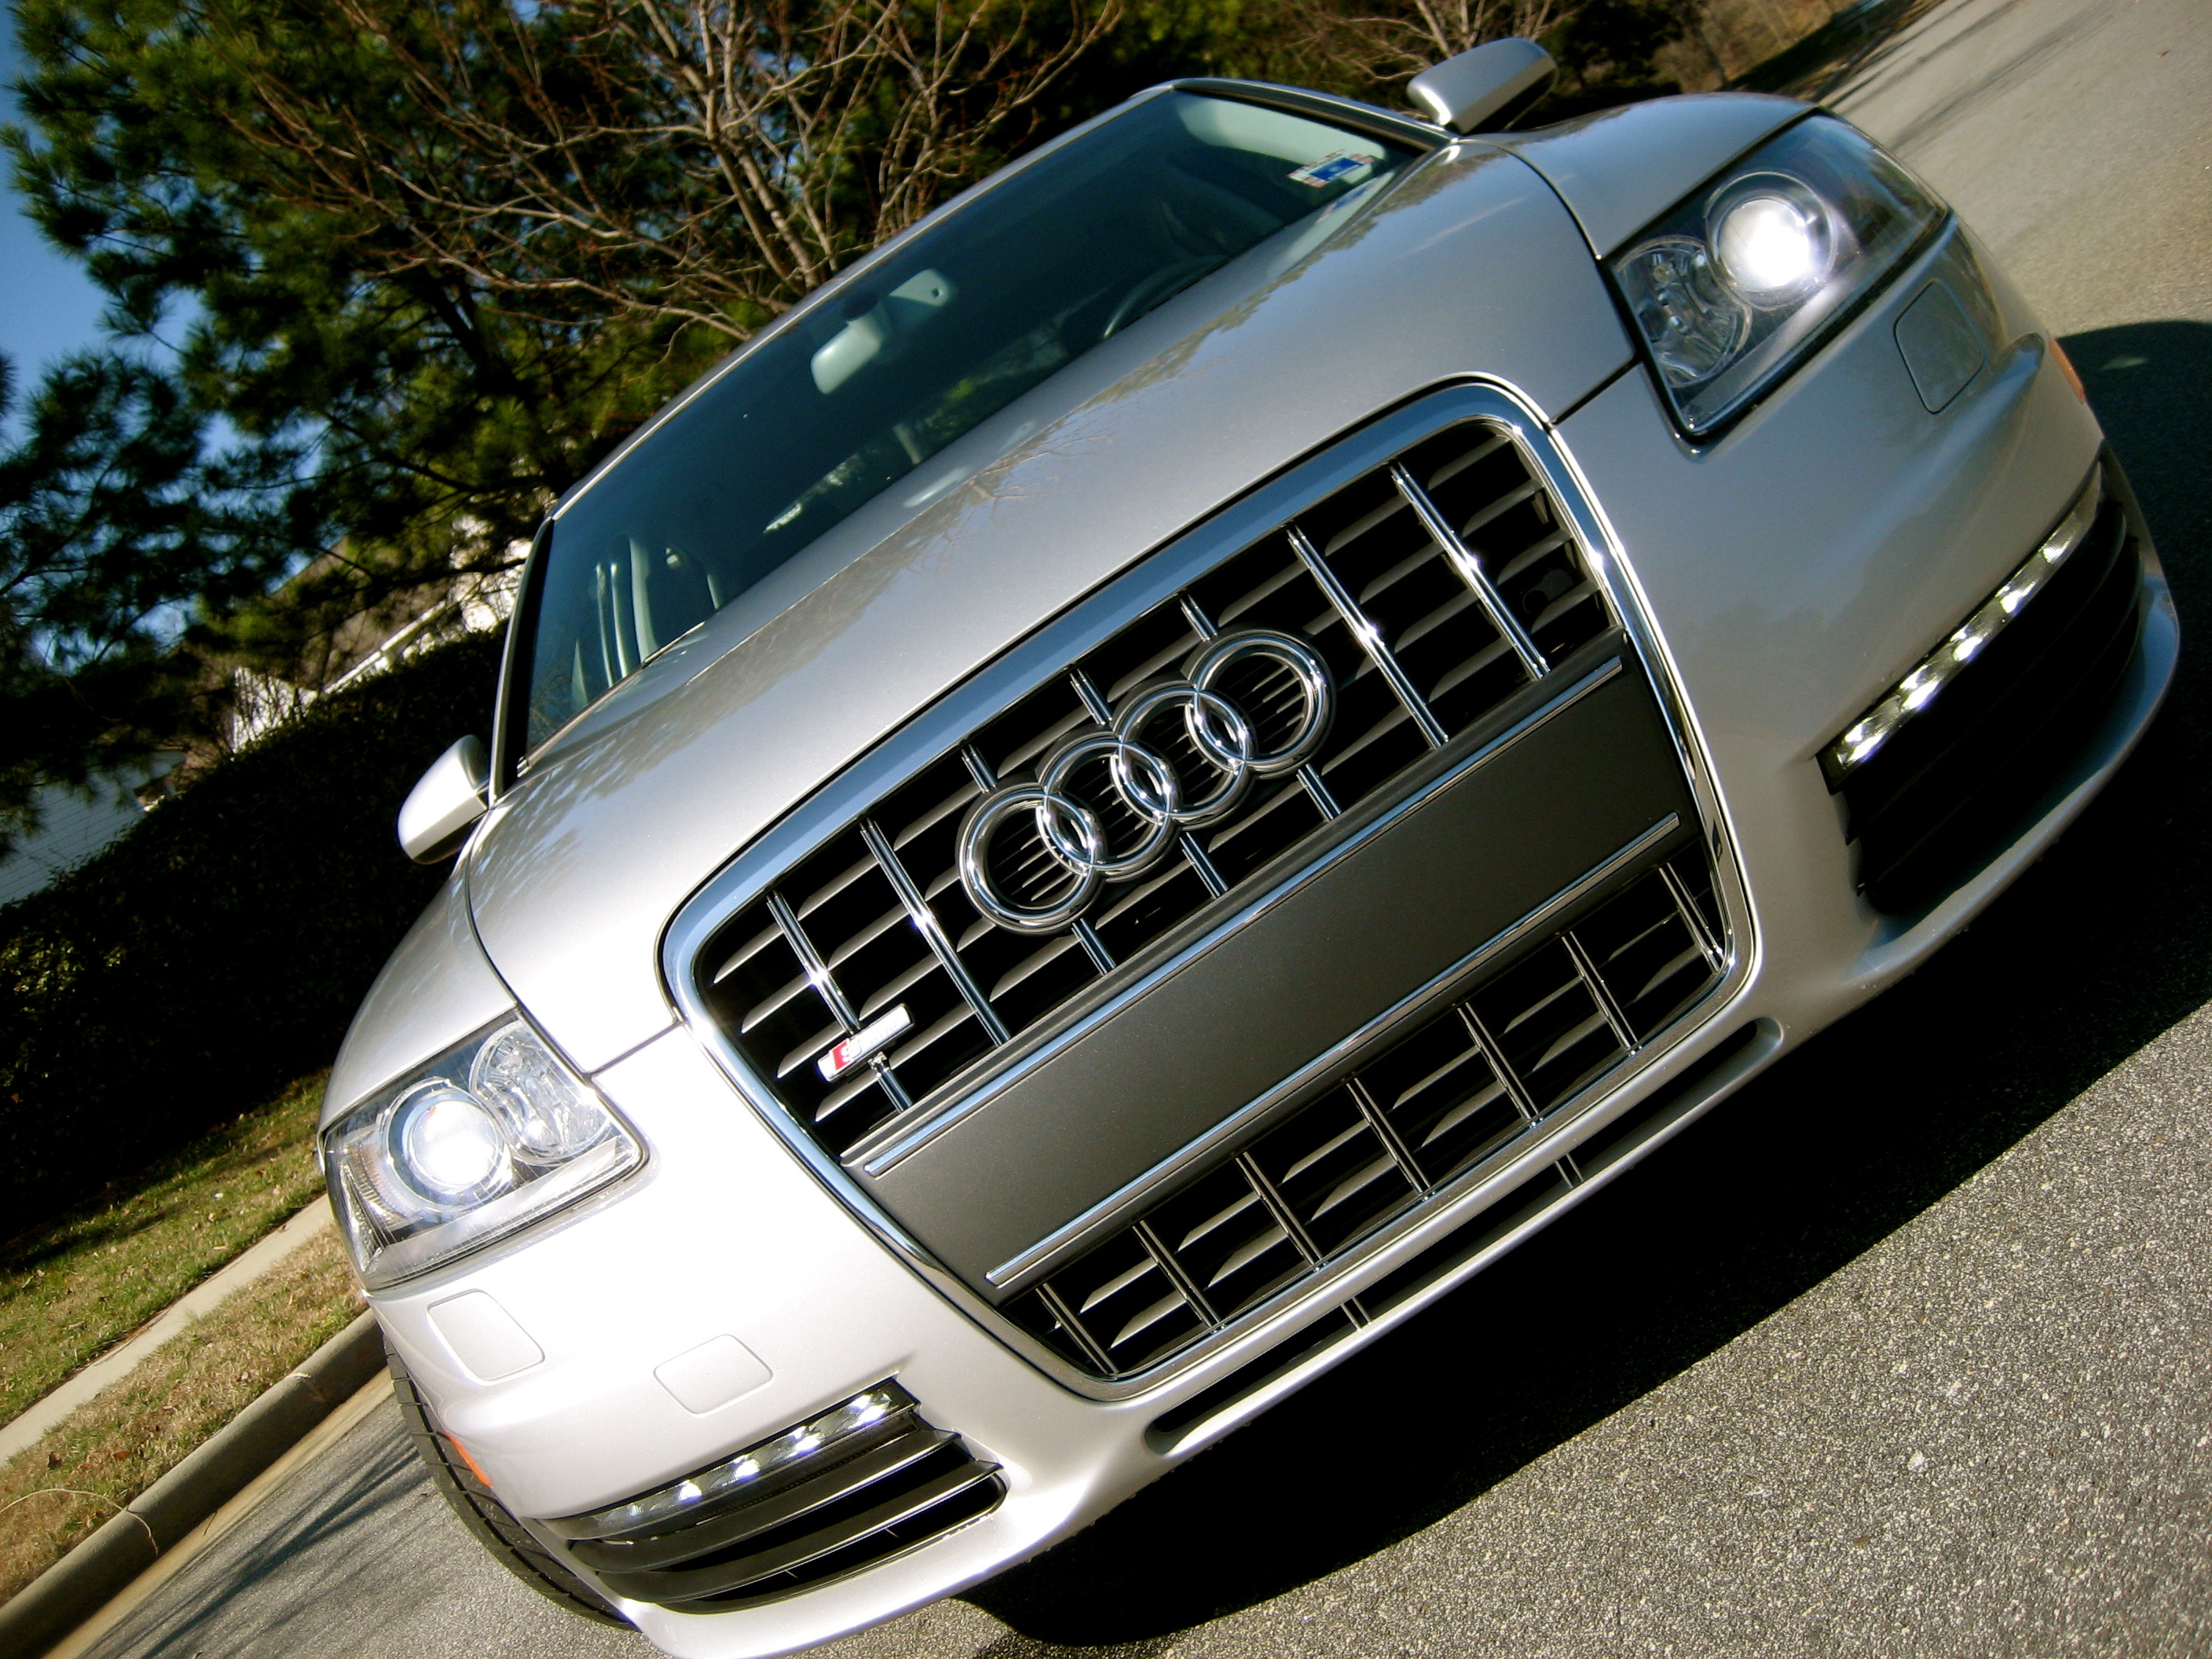 AudiAutoCouture 2005 Audi A6